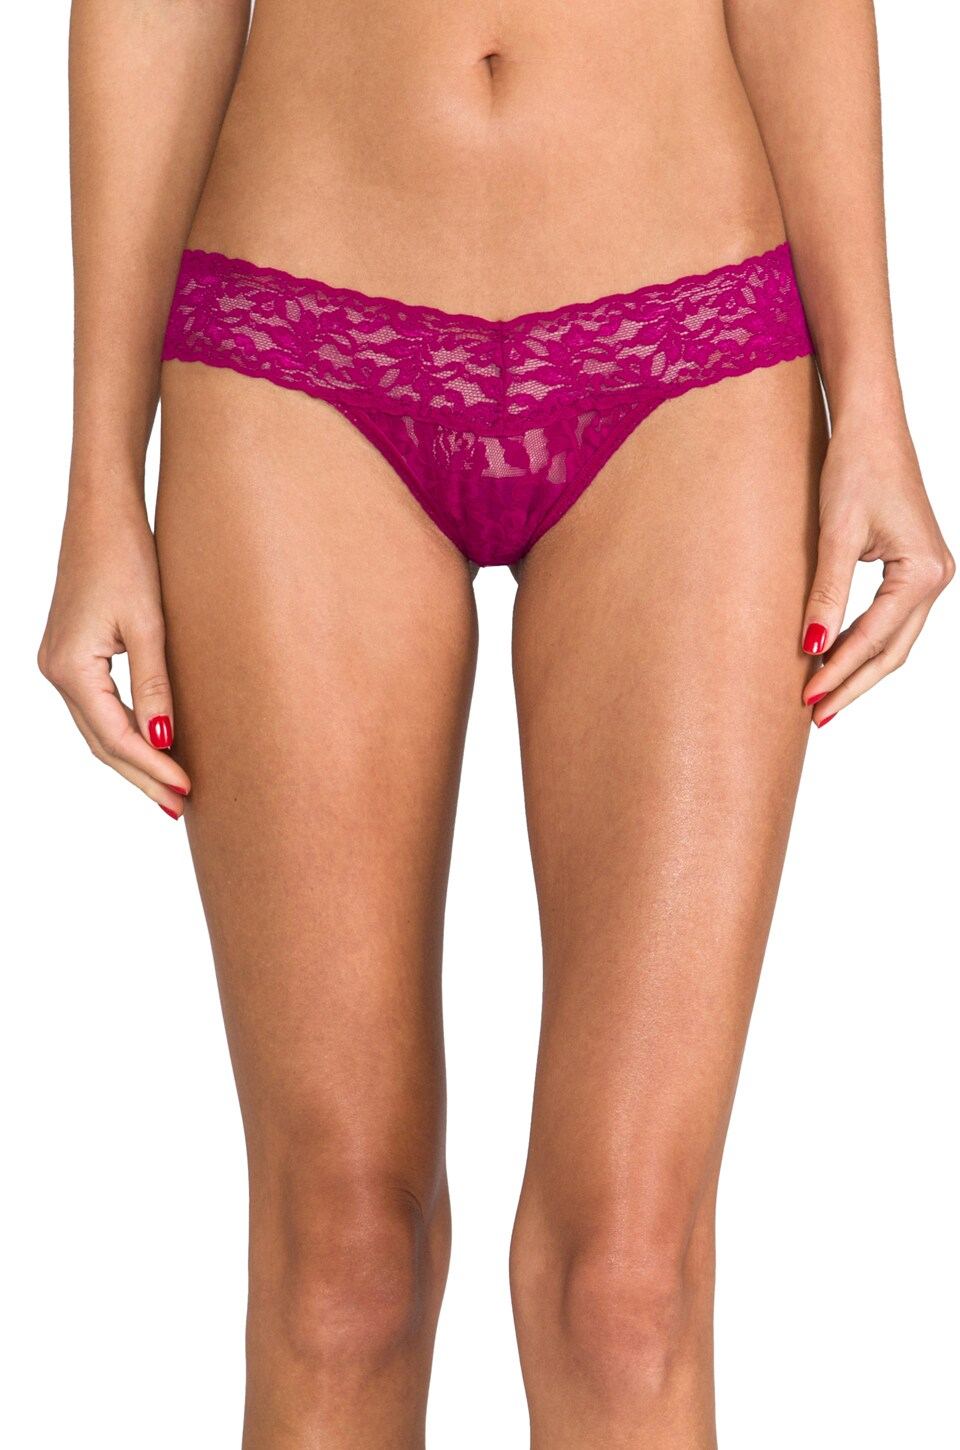 Hanky Panky Low Rise Thong in Beaujolais